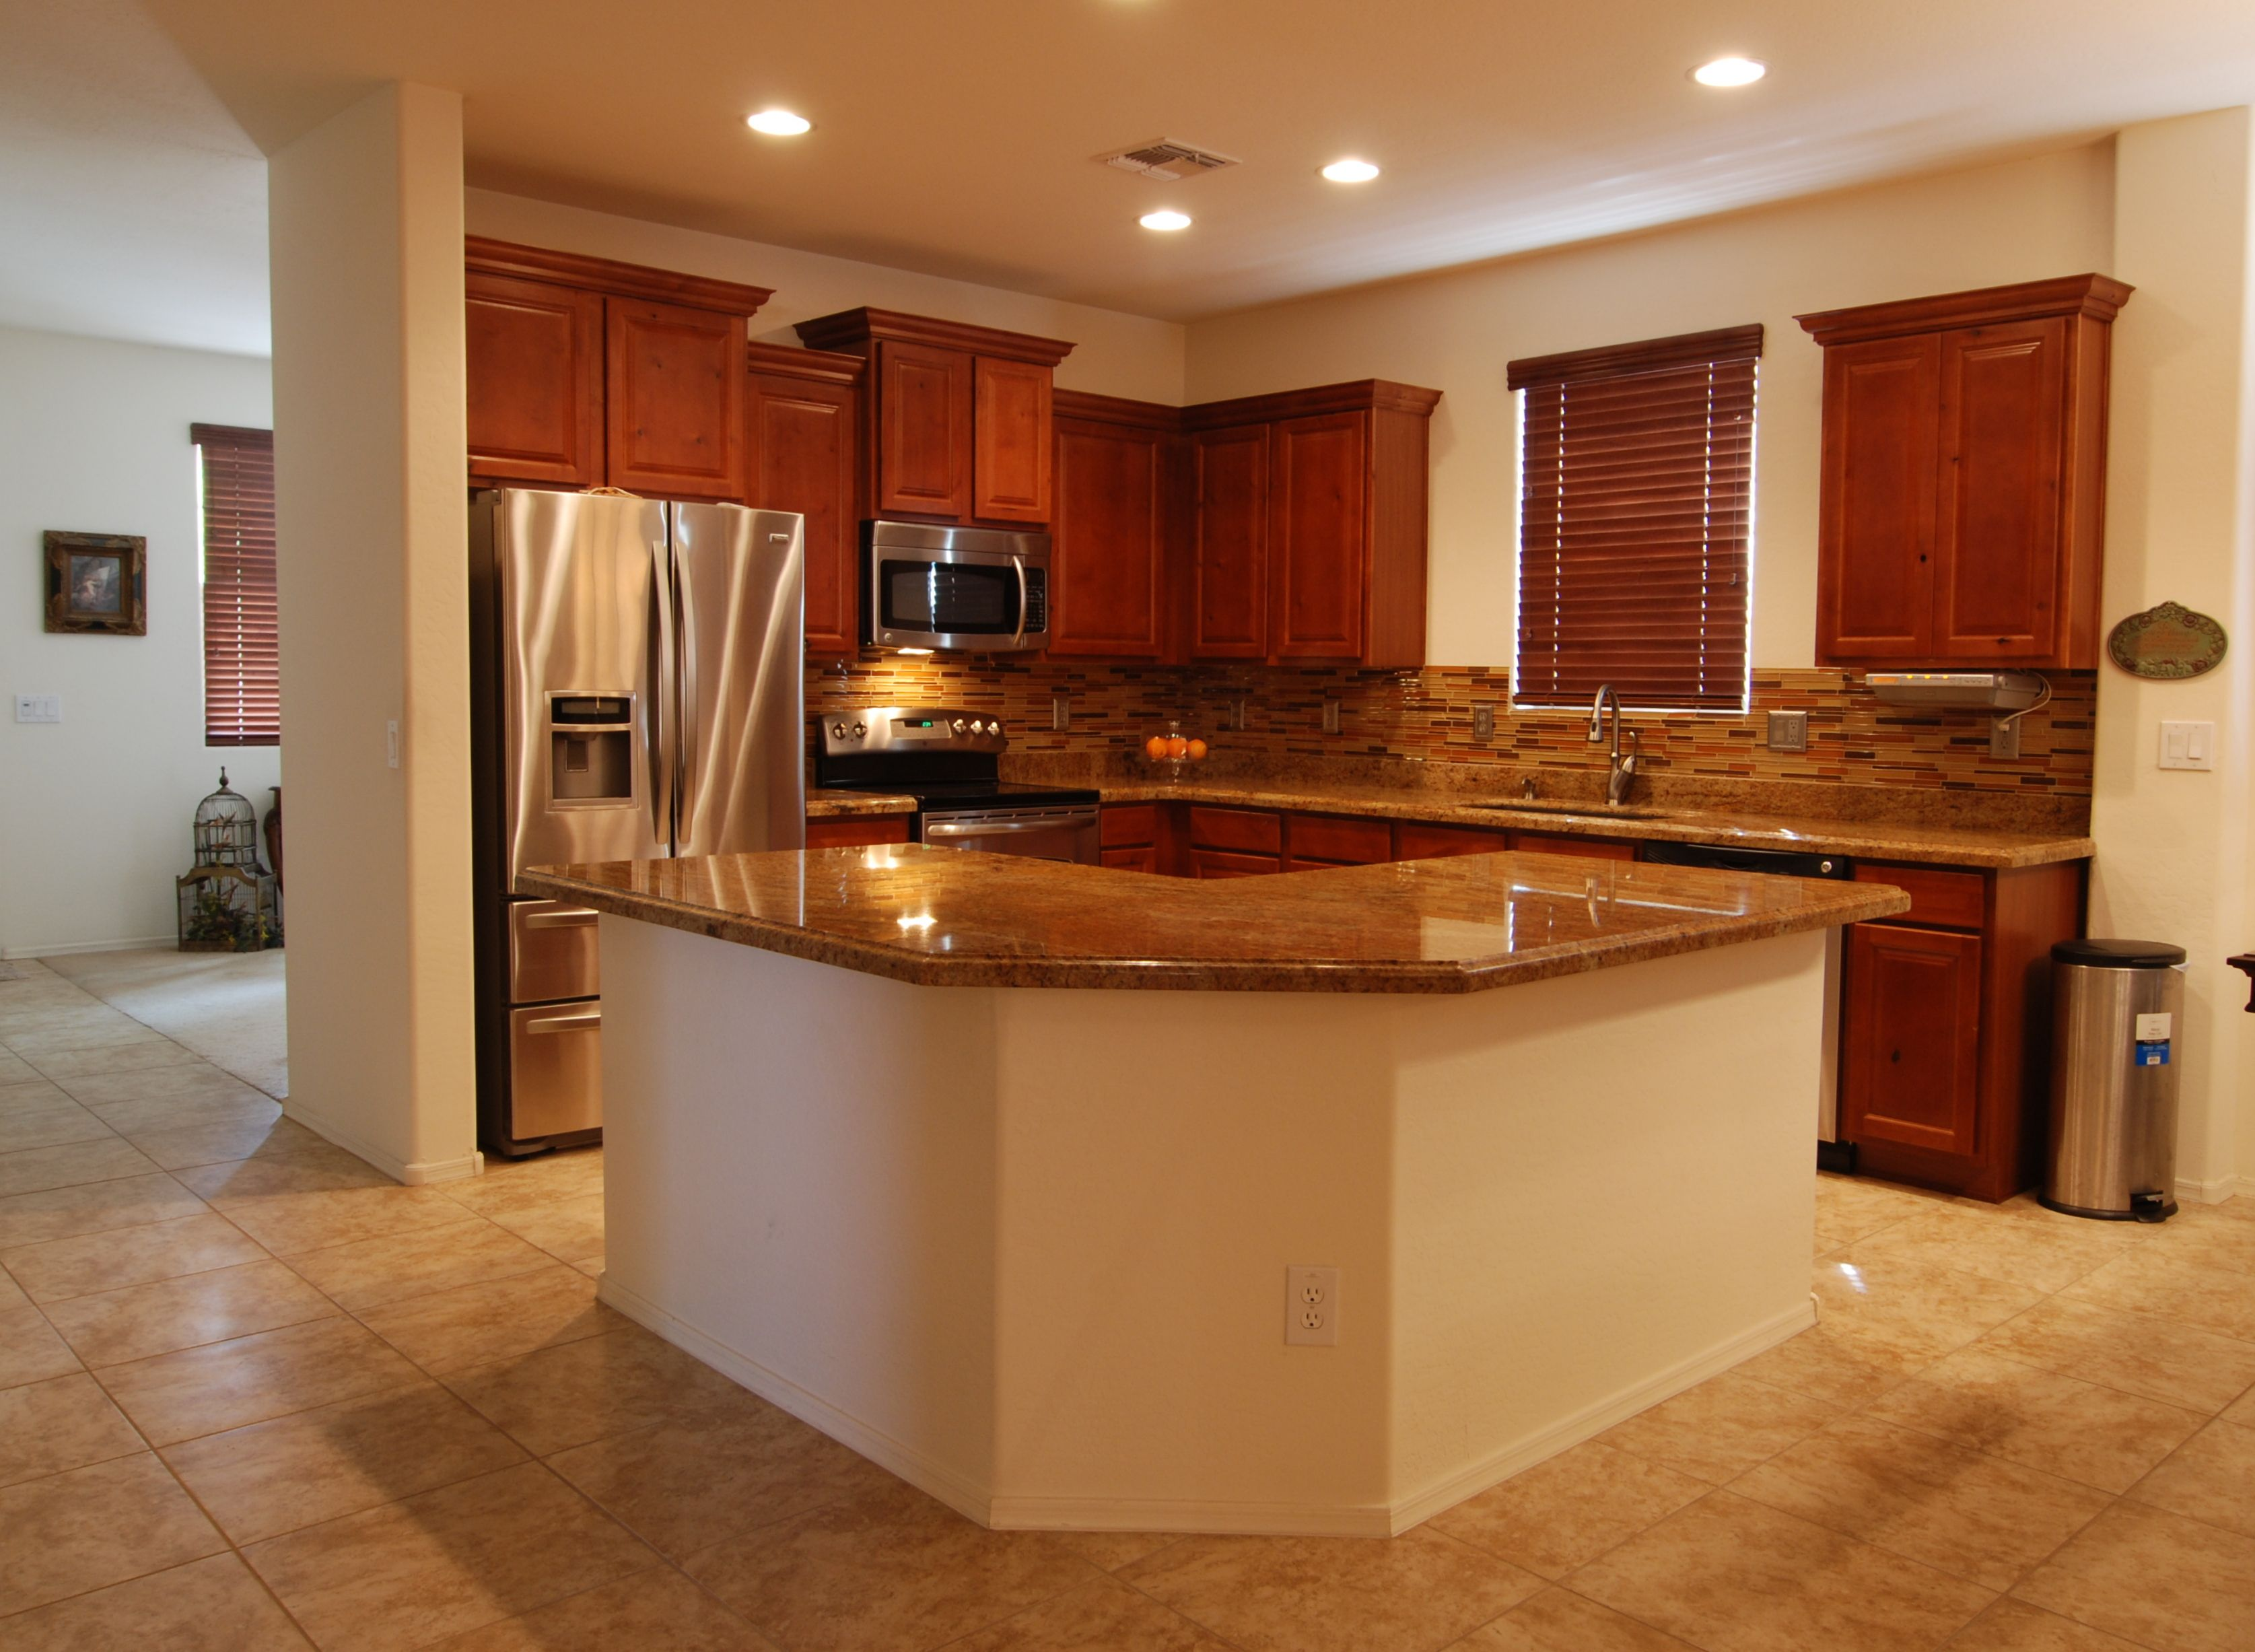 3416 W. Apollo Rd., Phoenix, AZ 85041. REDUCED $30K from original price!  Beautiful home for sale! $220K for chef's kitchen, five bedrooms and refreshing POOL in Phoenix Baseline Corridor! 20 minutes to downtown Phx.